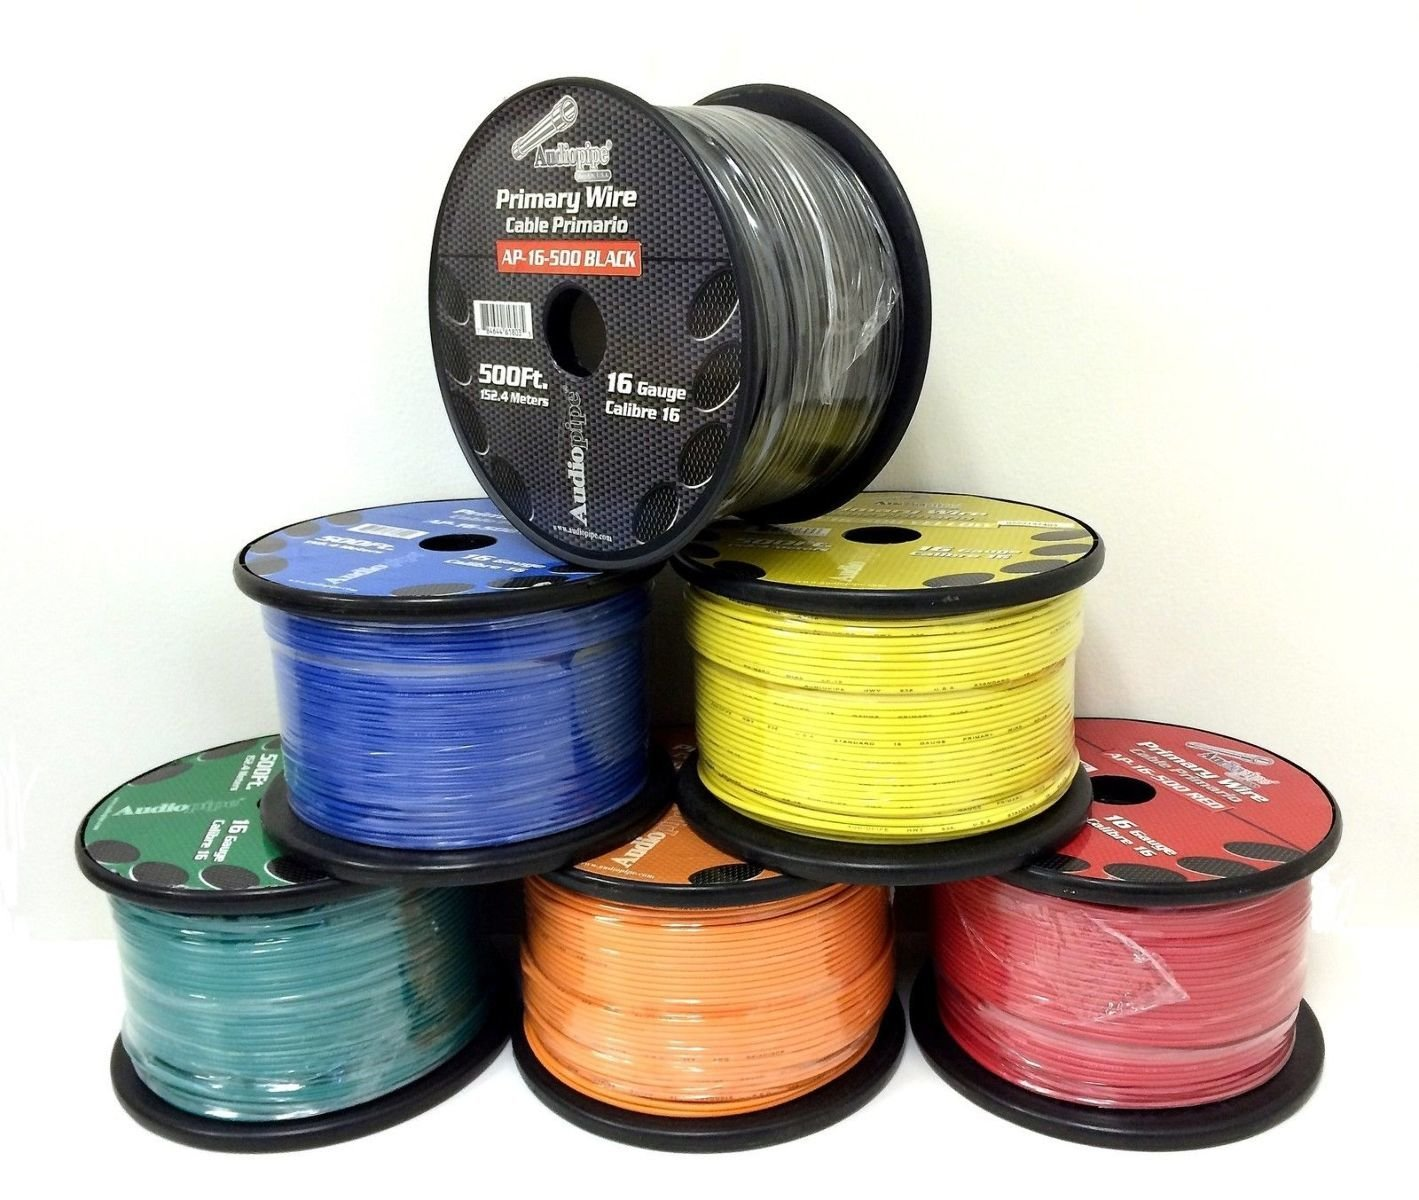 6 Rolls of 16 Gauge - 500' each Audiopipe Car Audio Home Primary Remote Wire